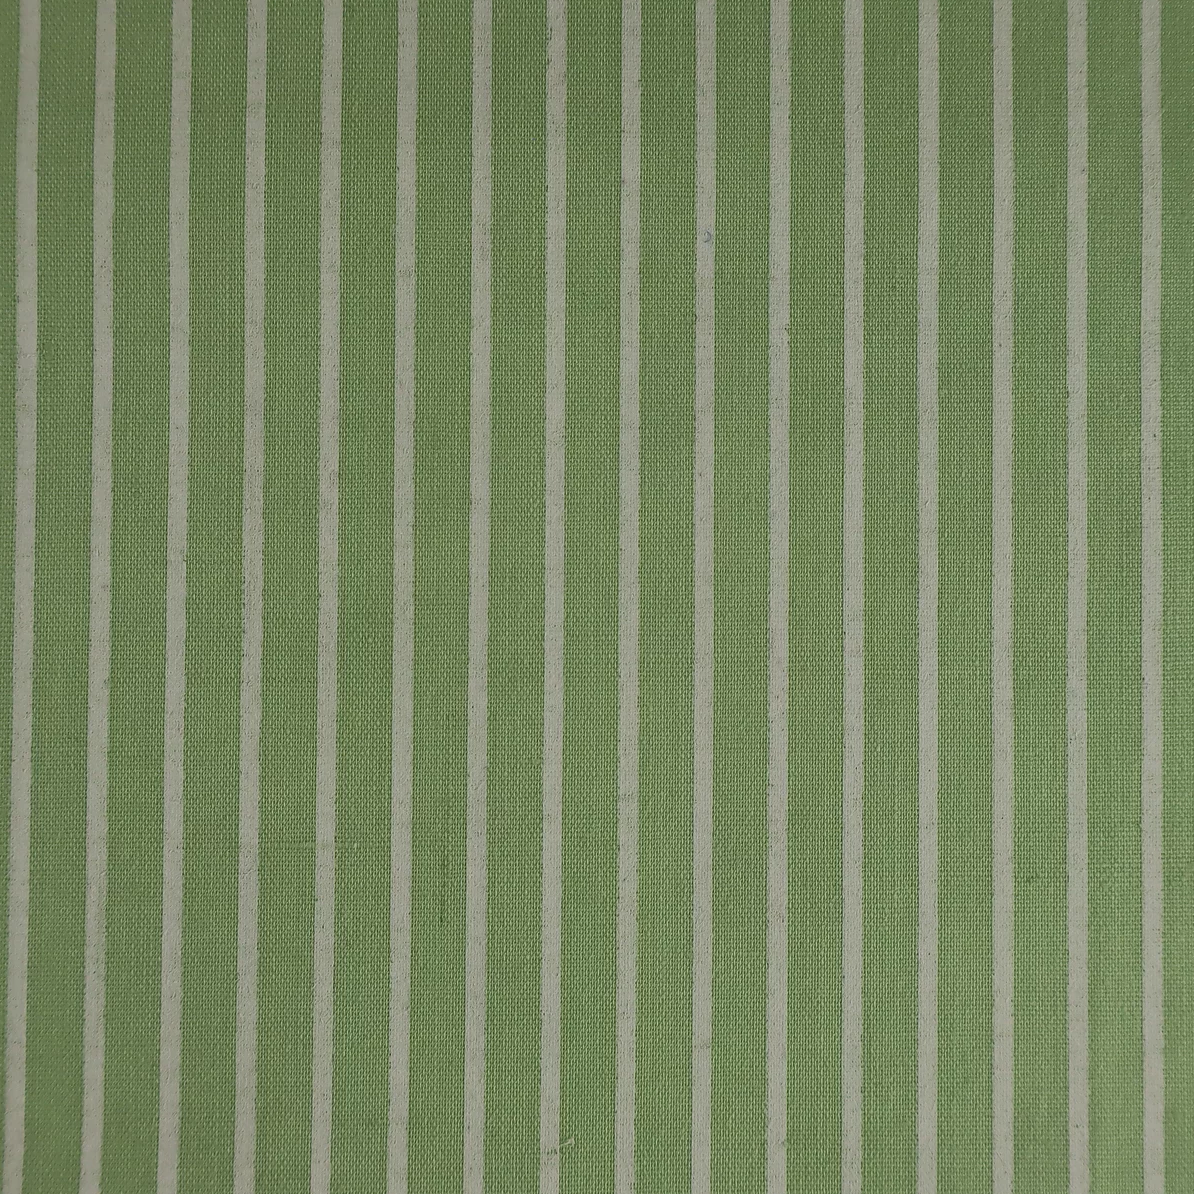 Meadow Green Stripe Polycotton Fabric 112cm Wide Per 1/2 Metre